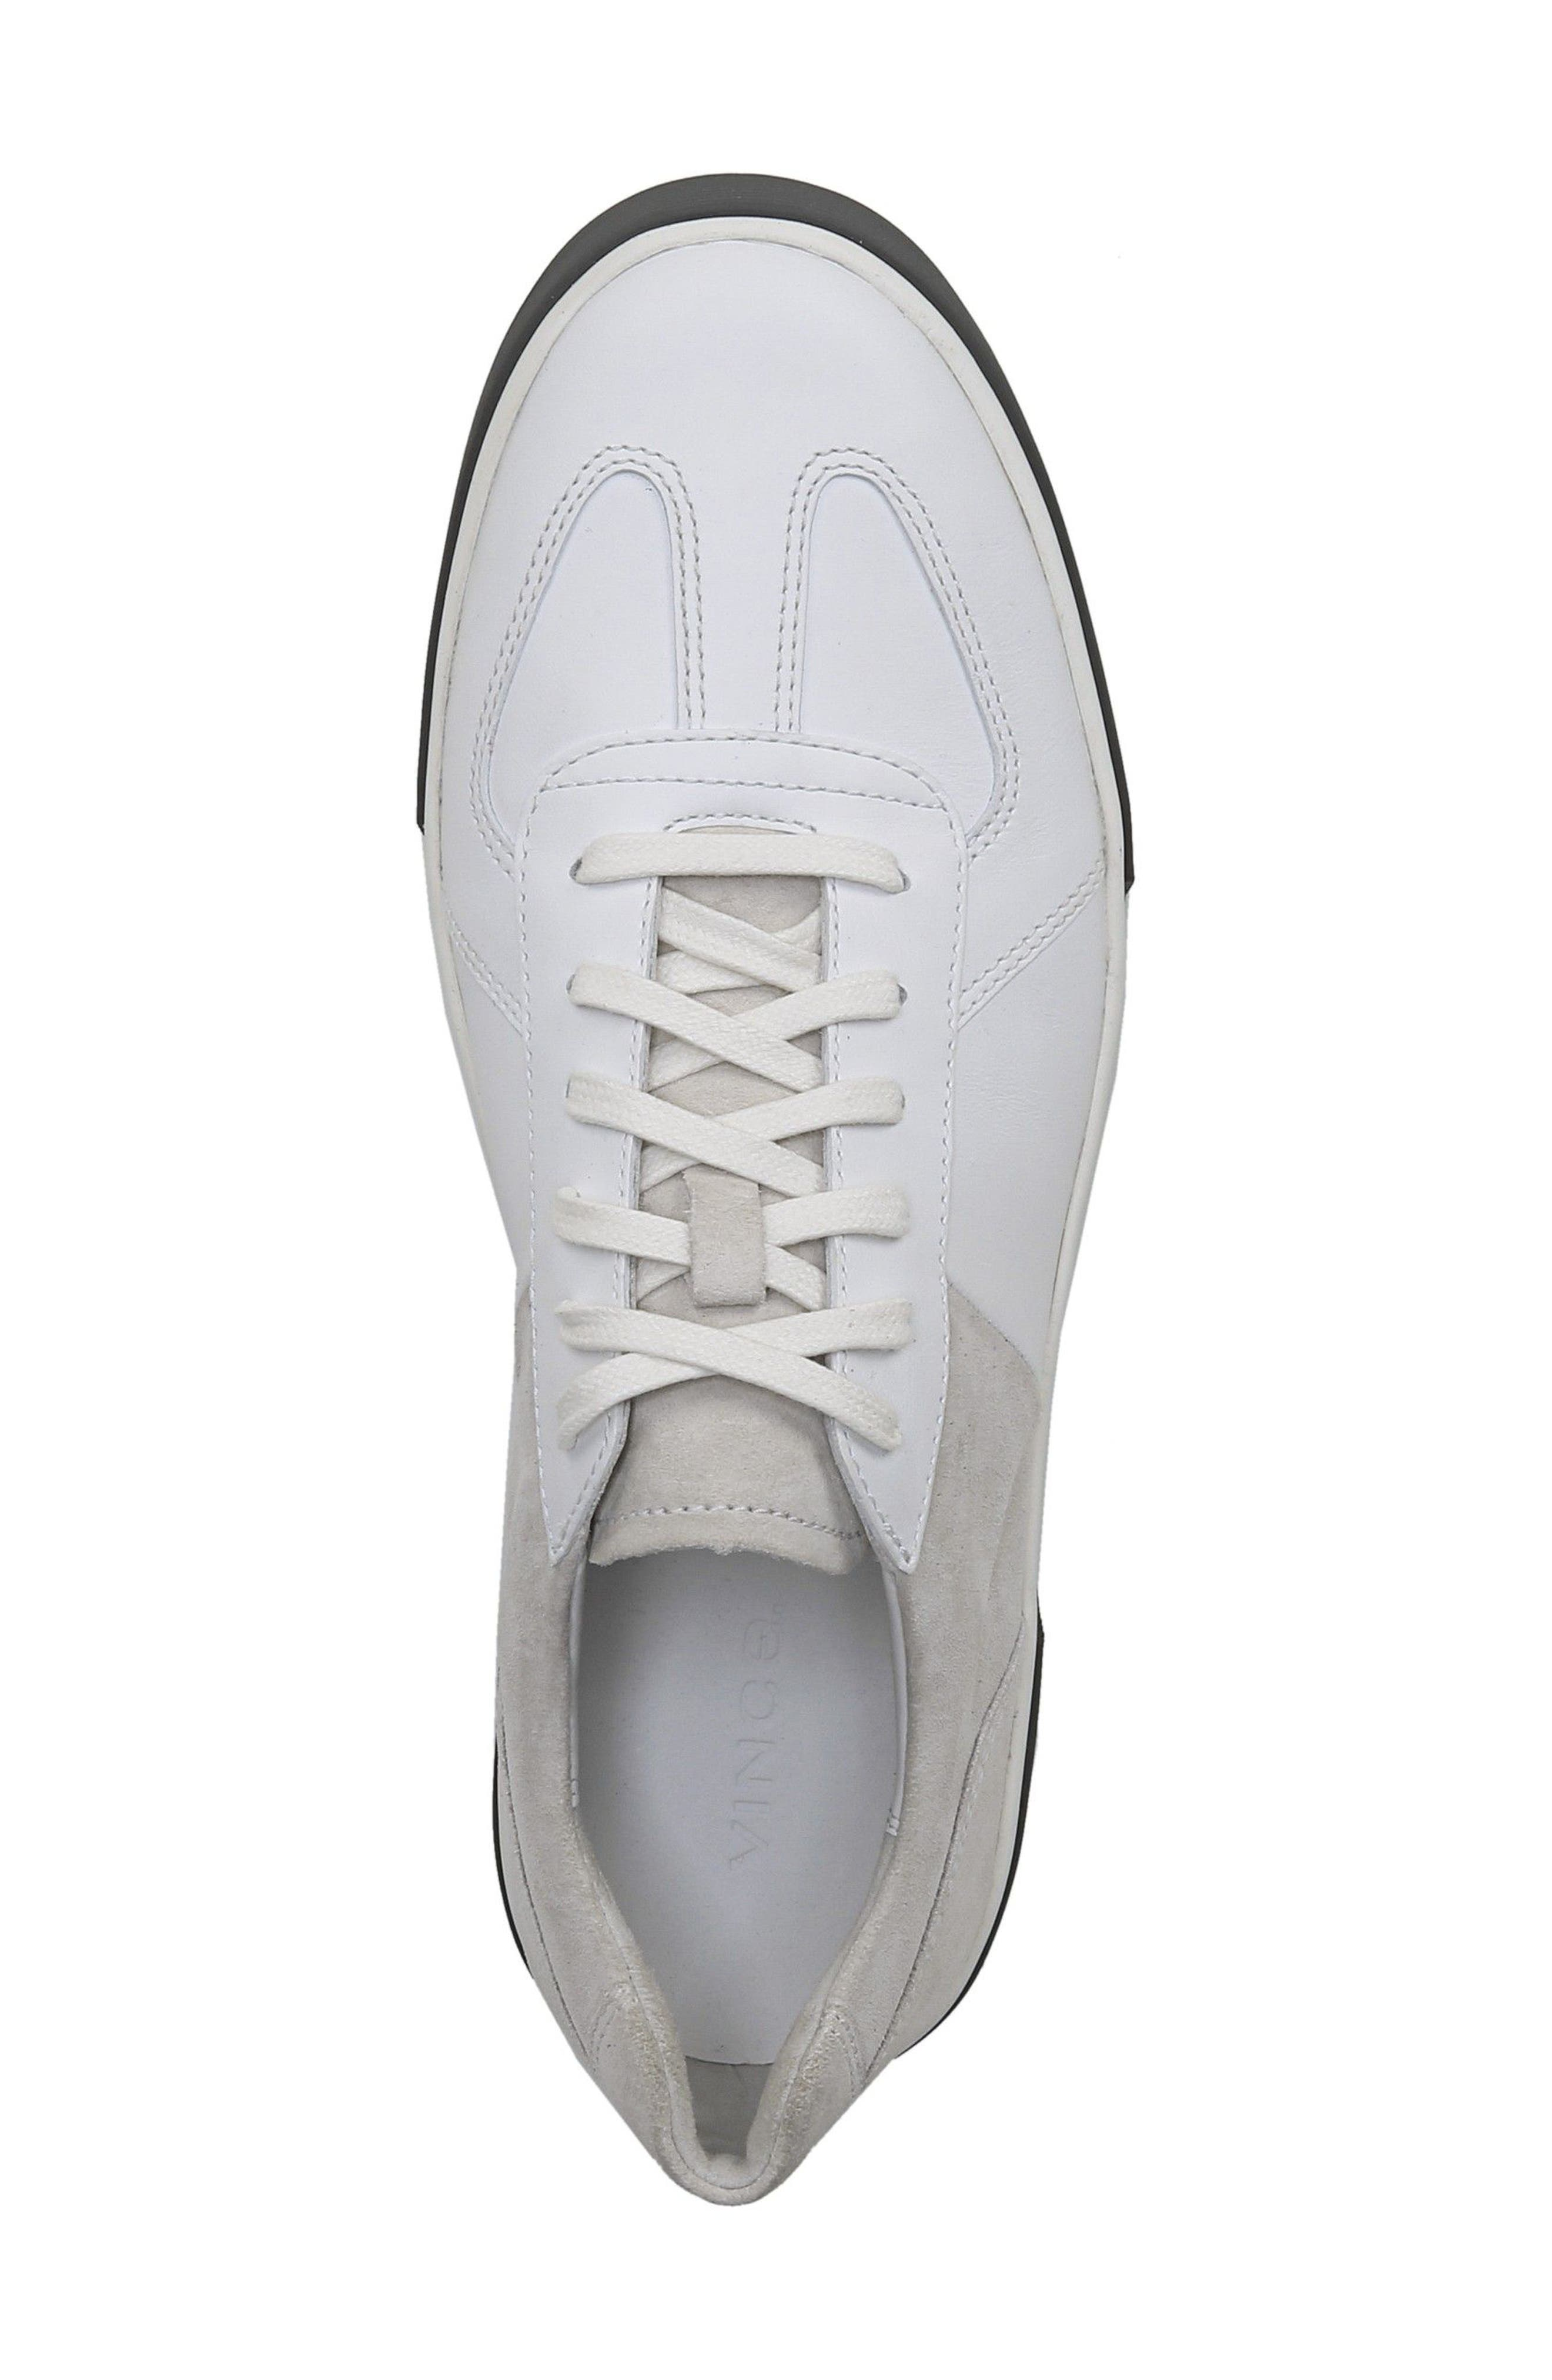 Rogue Low Top Sneaker,                             Alternate thumbnail 4, color,                             White/ Horchata